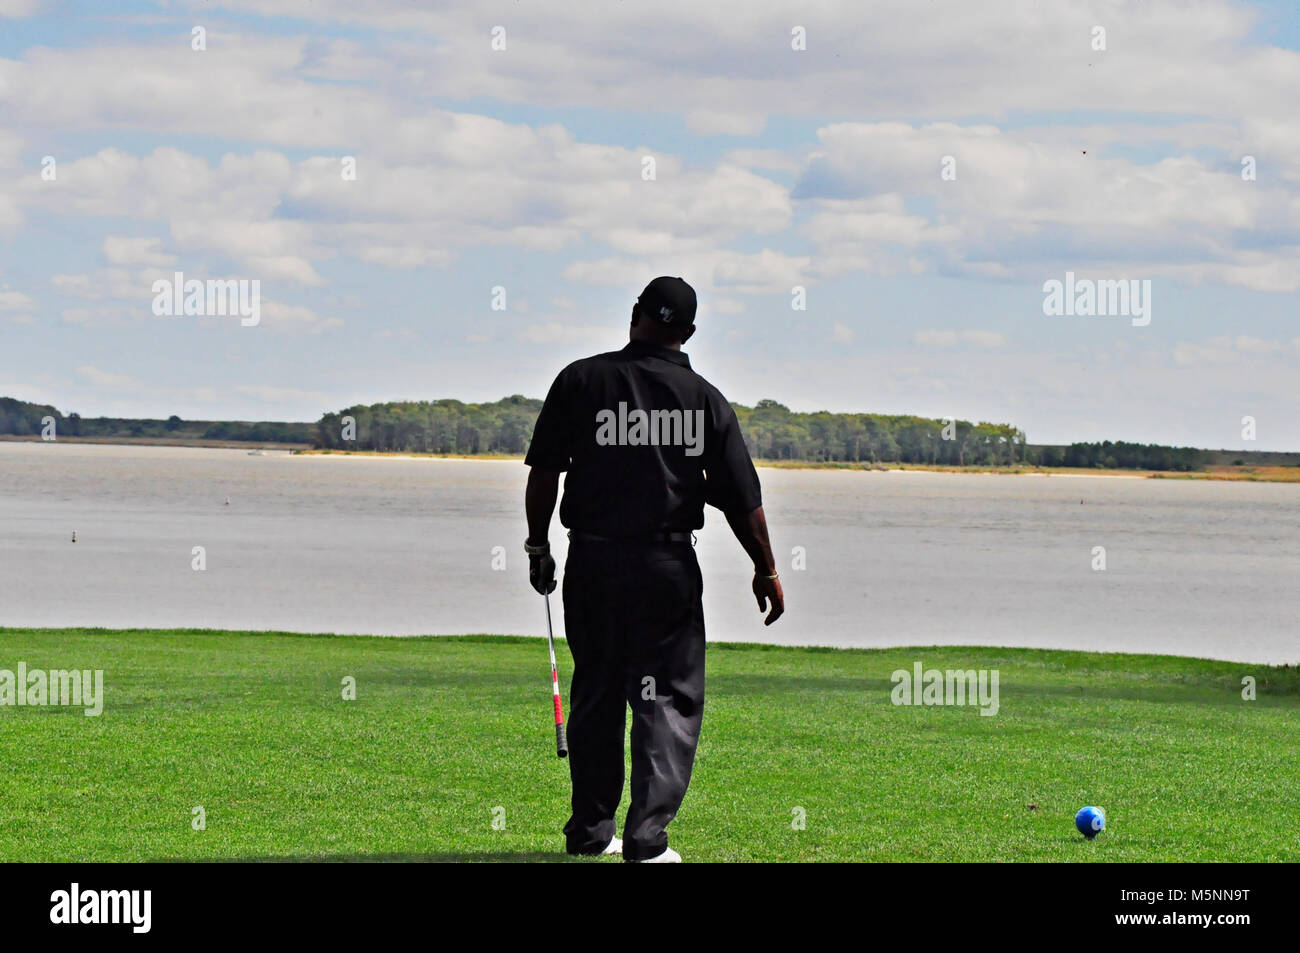 Golfer in Black teeing off on a par 3 - Stock Image